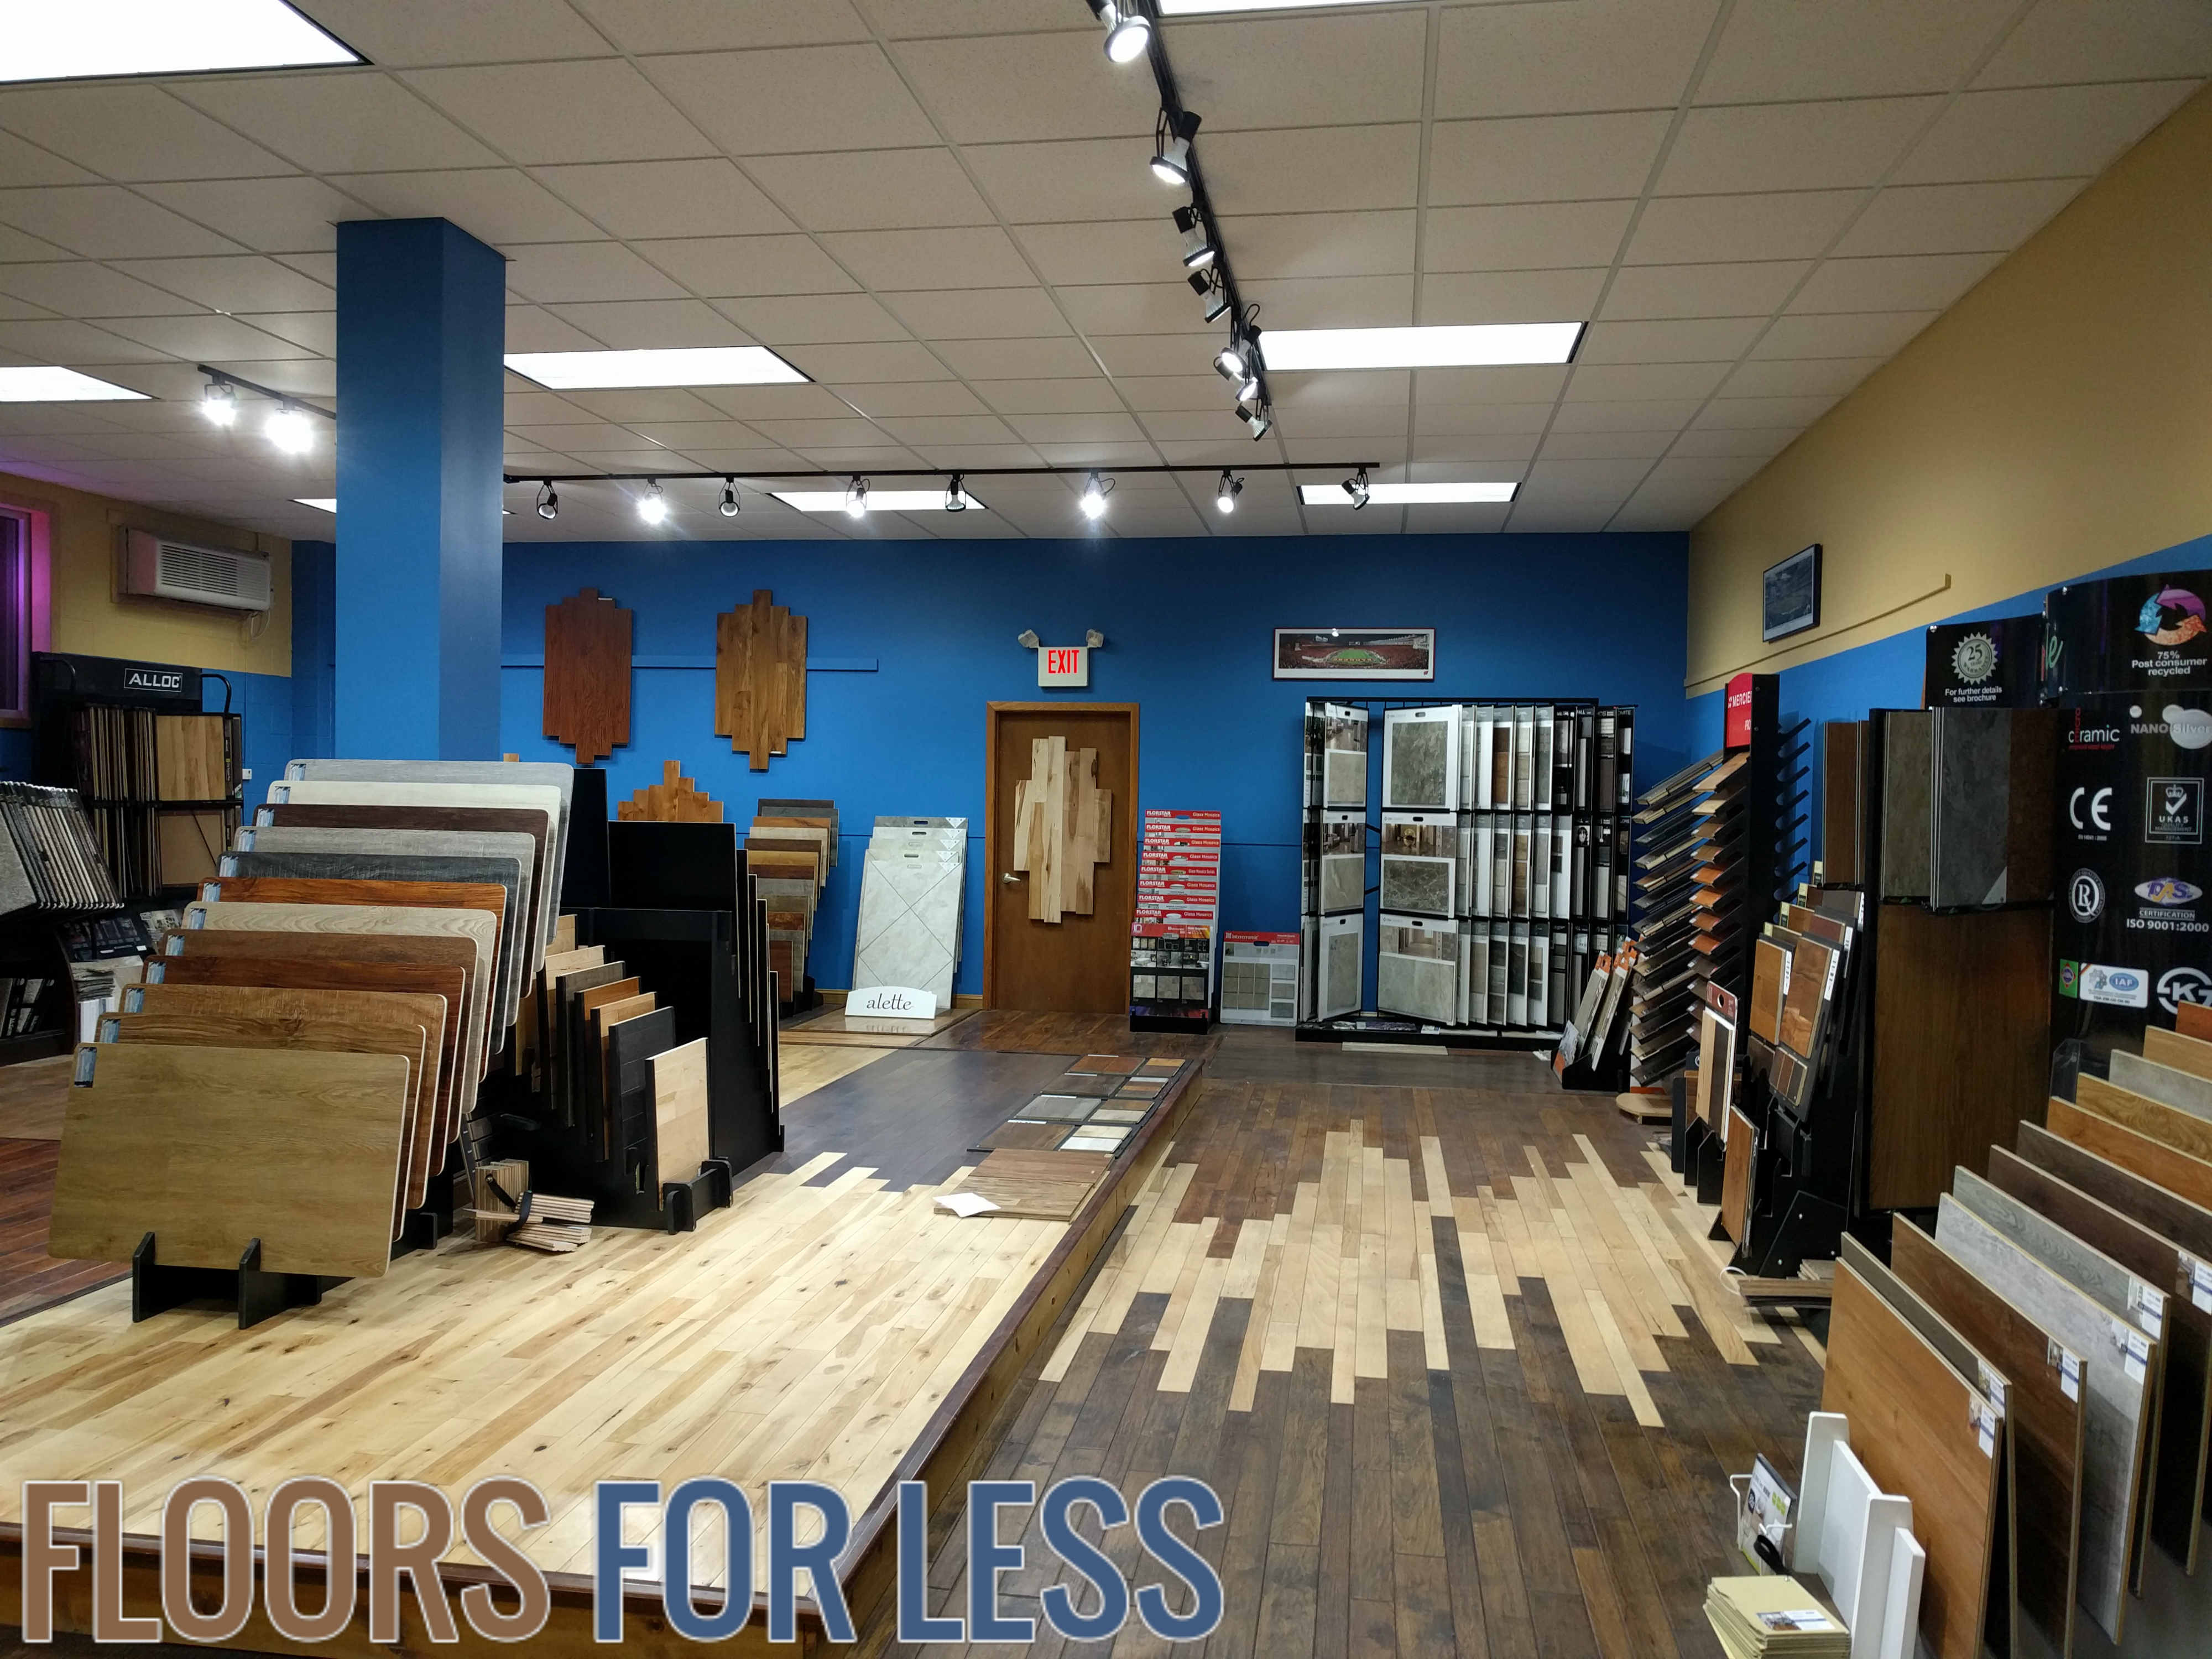 hardwood floor refinishing waukesha wi of flooring madison wi flooring ideas within for all your flooring needs contact the best company in madison wi